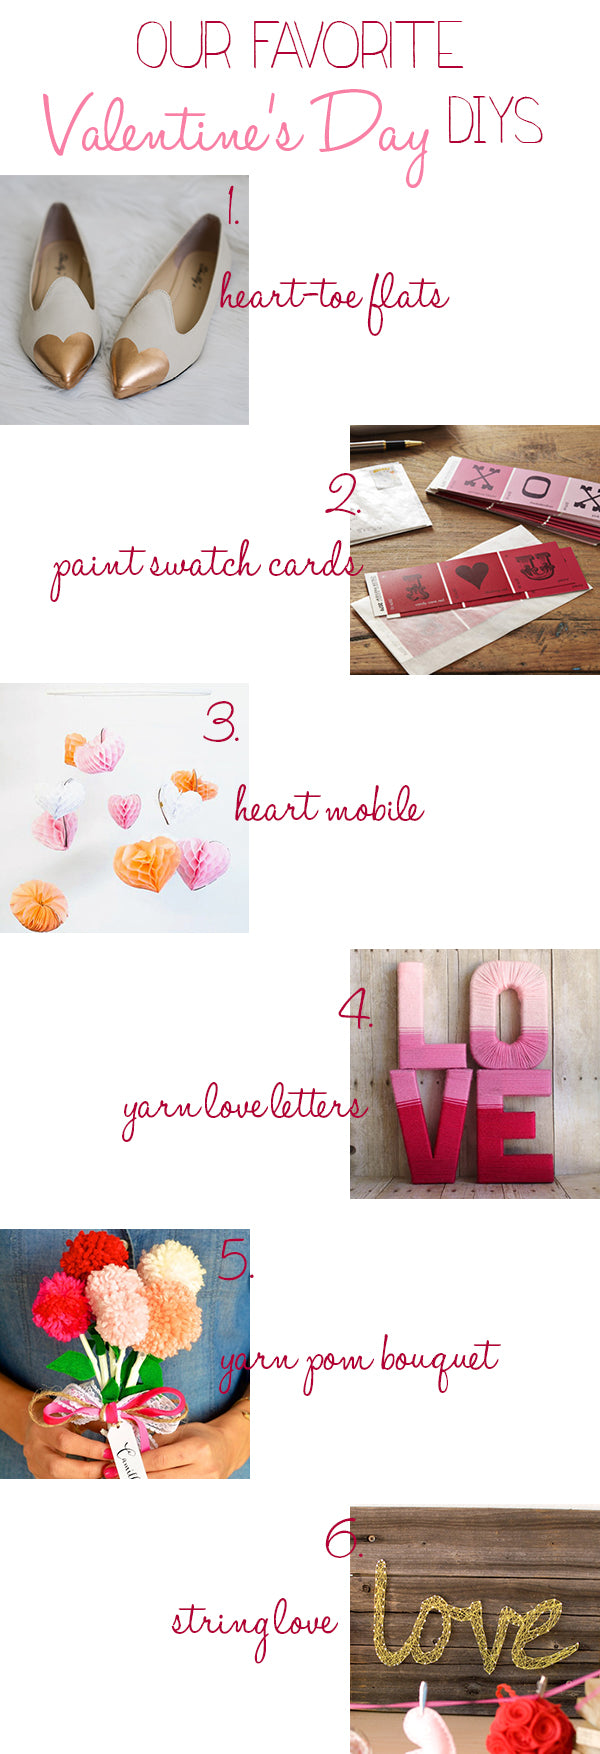 Valentine's Day DIY Guide